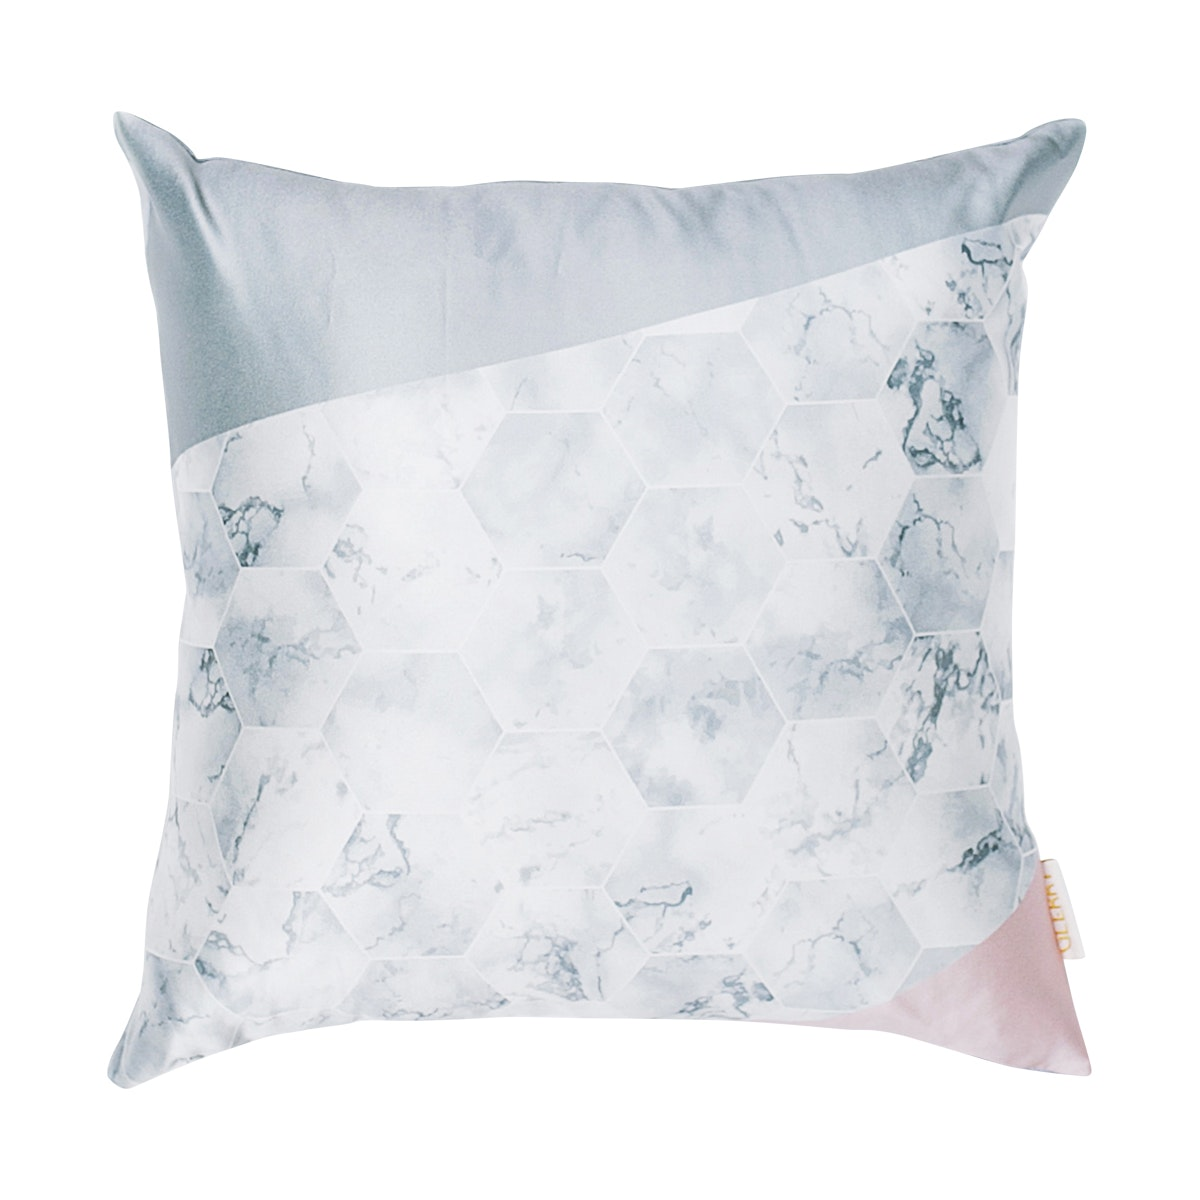 Glerry Home Decor Silver Hex Cushion 40x40cm